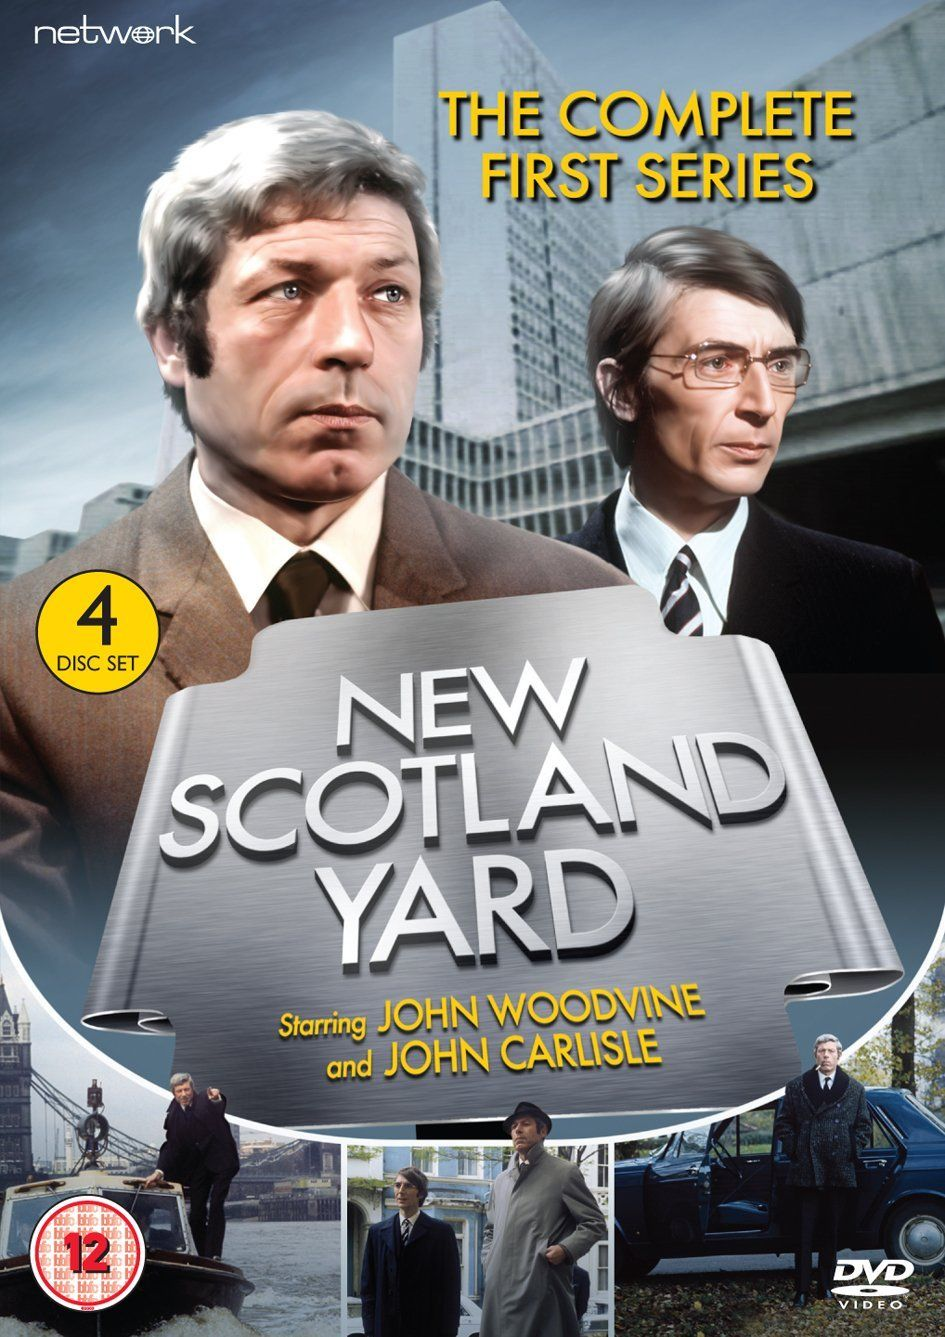 New Scotland Yard. Scotland yard, British tv series, Tv